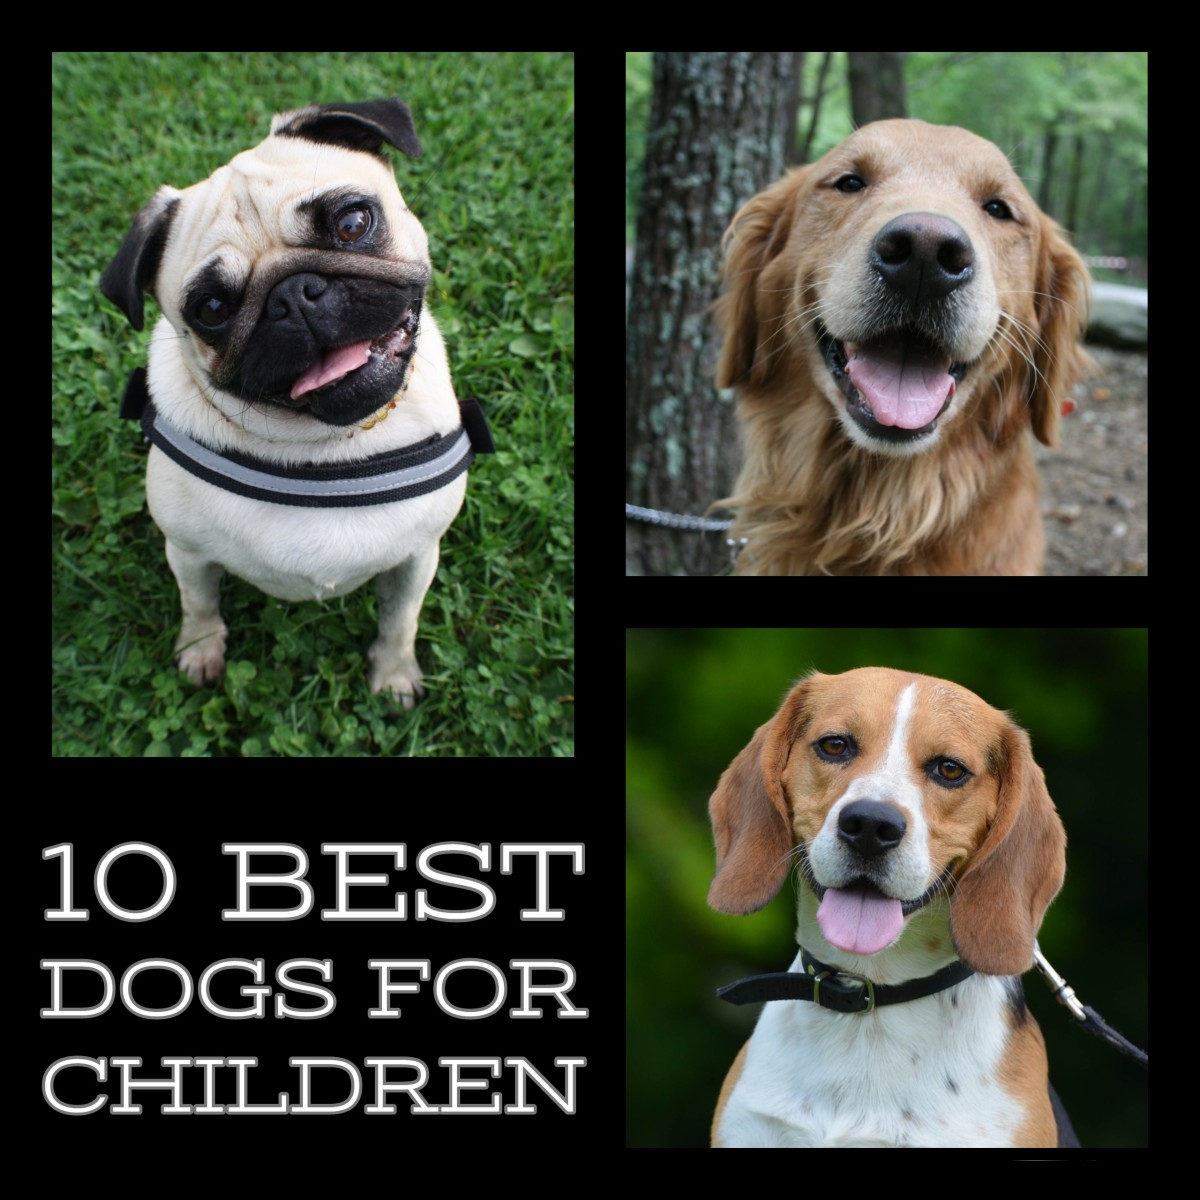 The 10 Best Dogs for Children